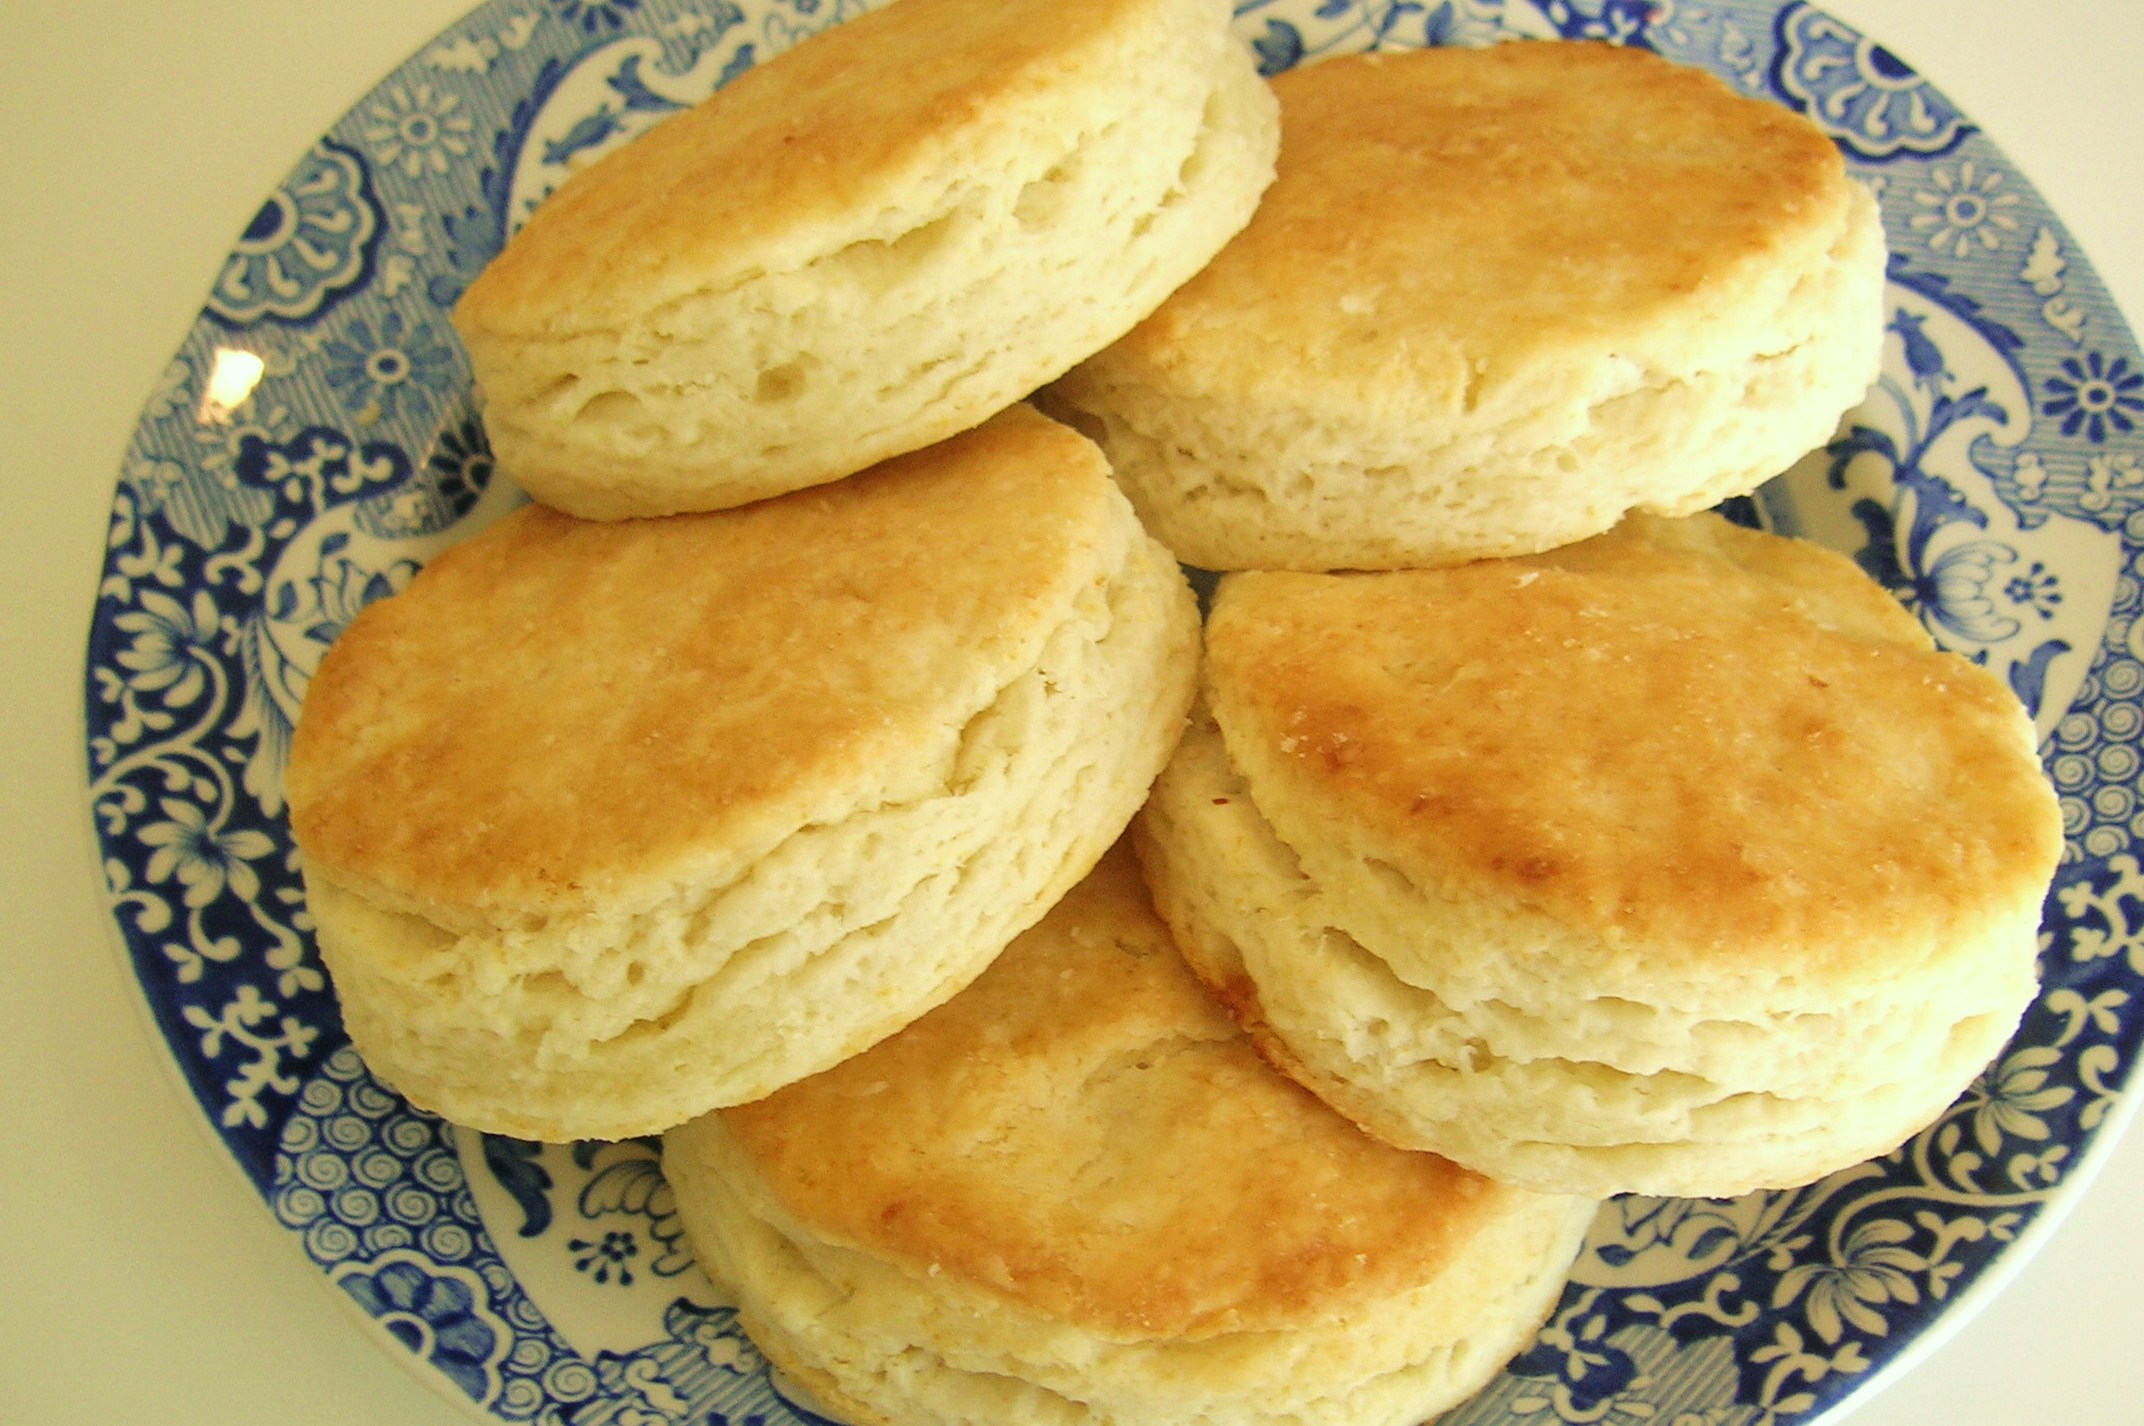 biscuits 2